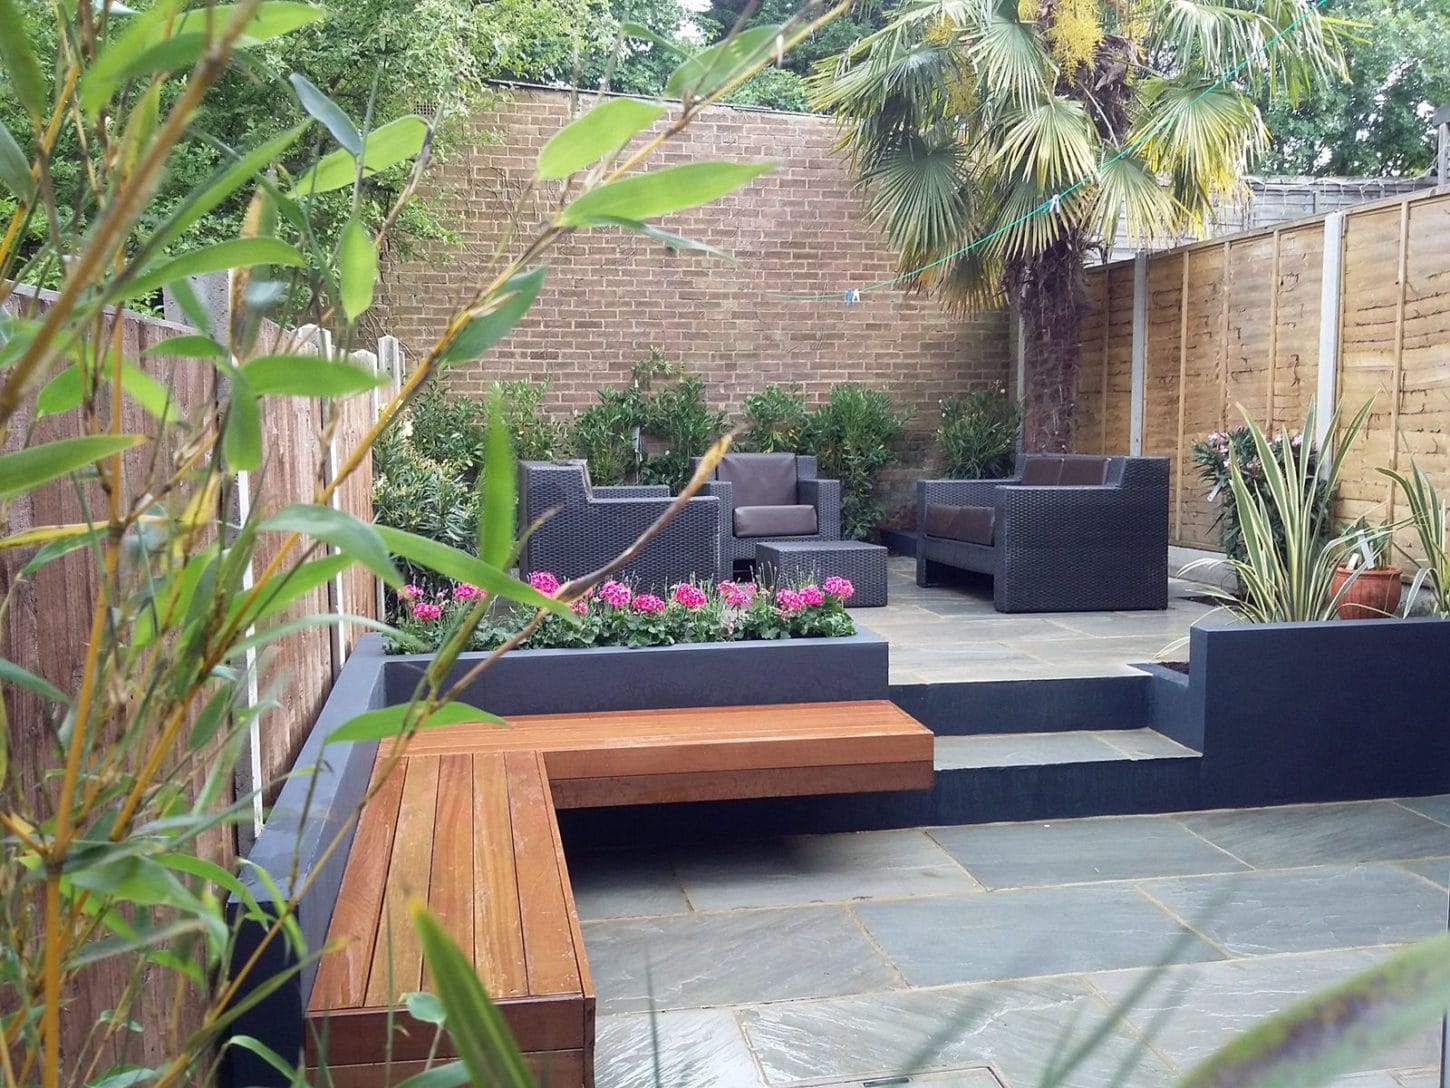 Contemporary patio design ideas photos for Paving garden designs